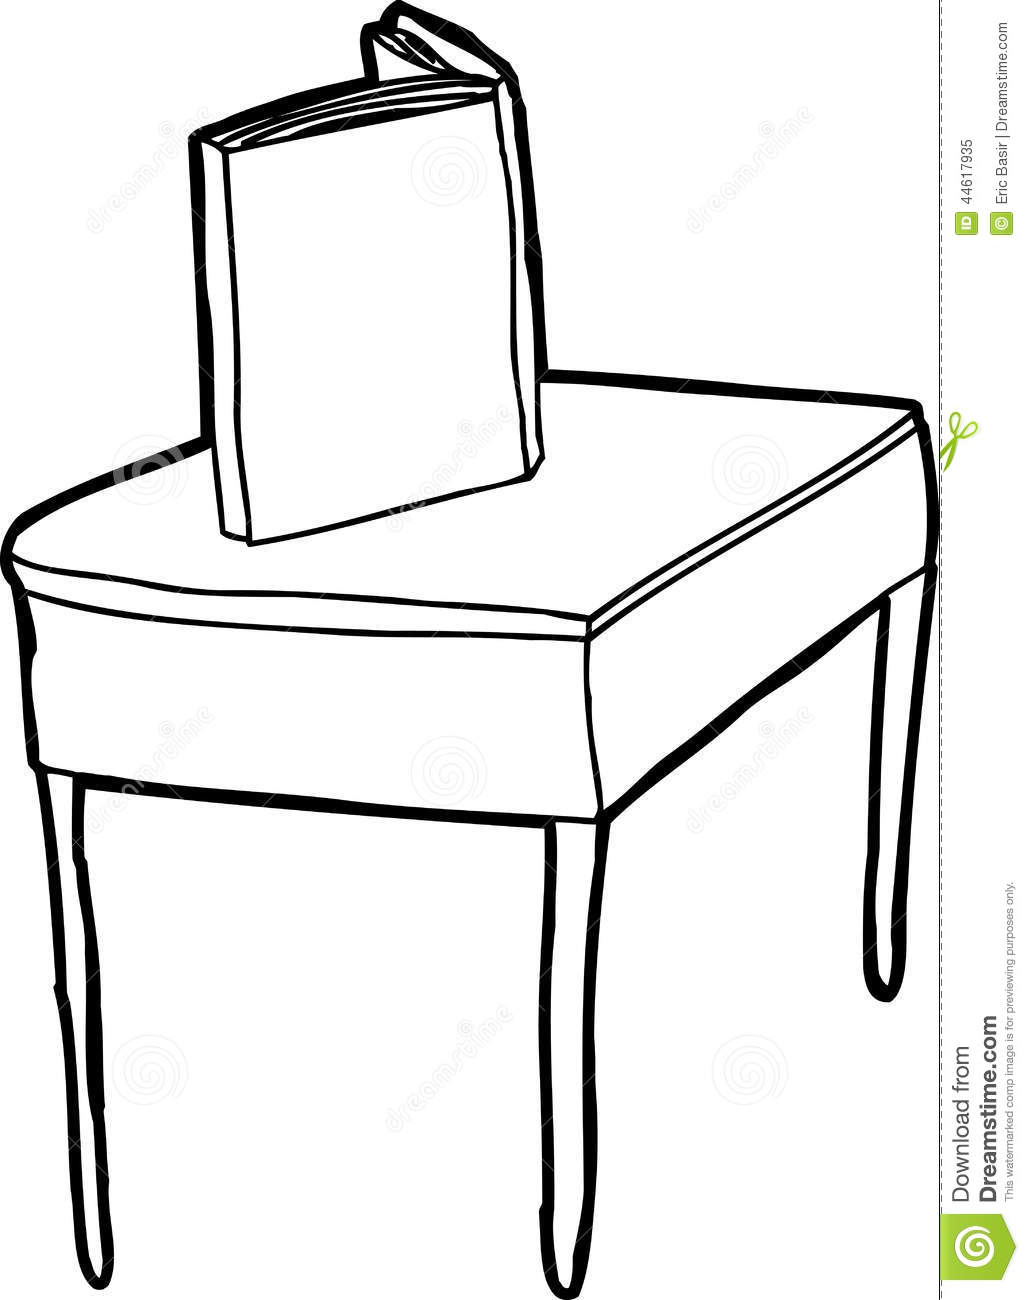 Outlined Book On Desk Stock Vector